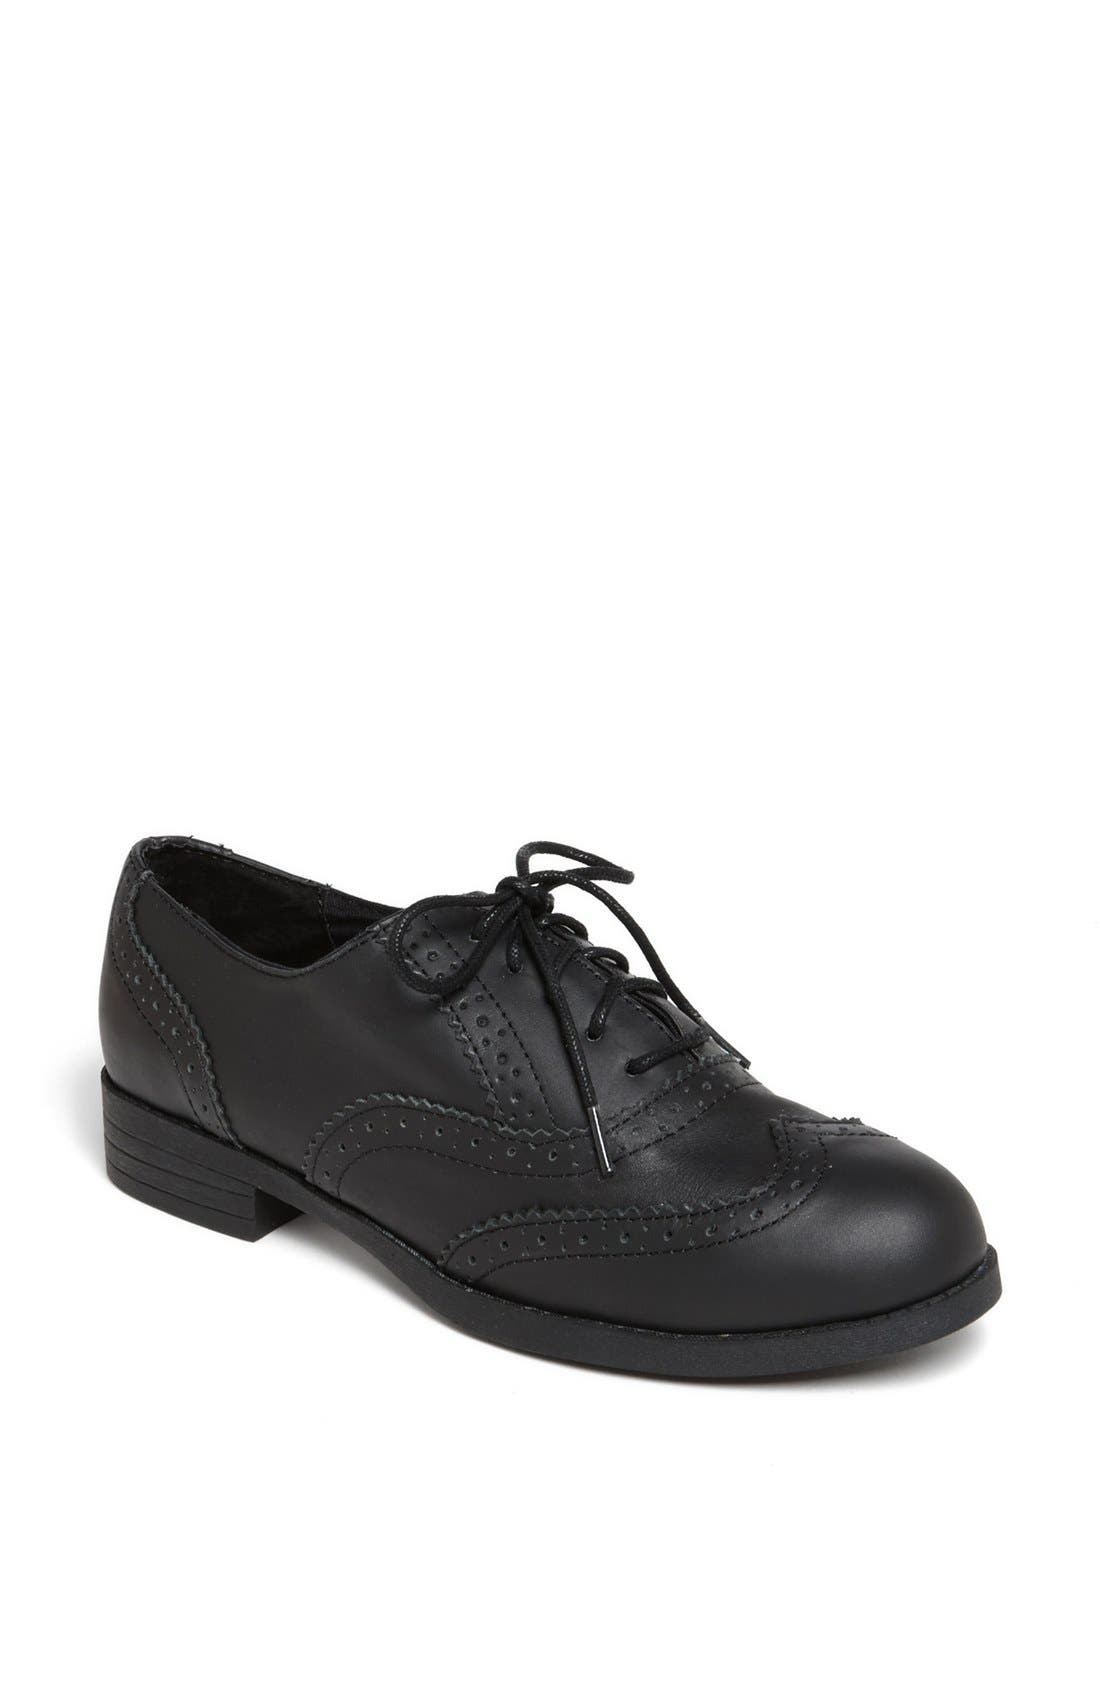 Alternate Image 1 Selected - Topshop 'Multiply' Oxford Flat